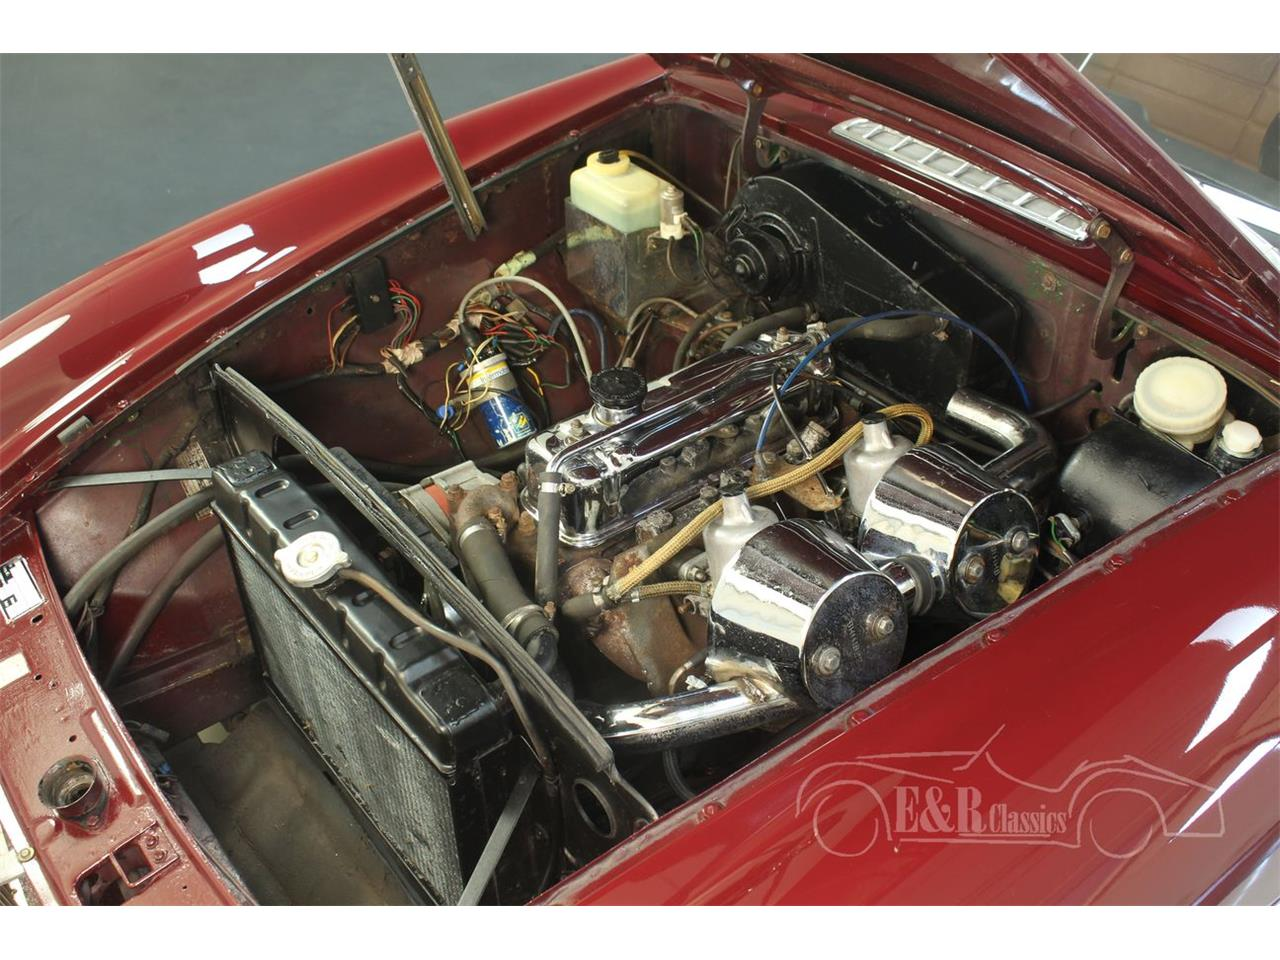 Large Picture of '76 MG MGB - $22,250.00 Offered by E & R Classics - Q45I